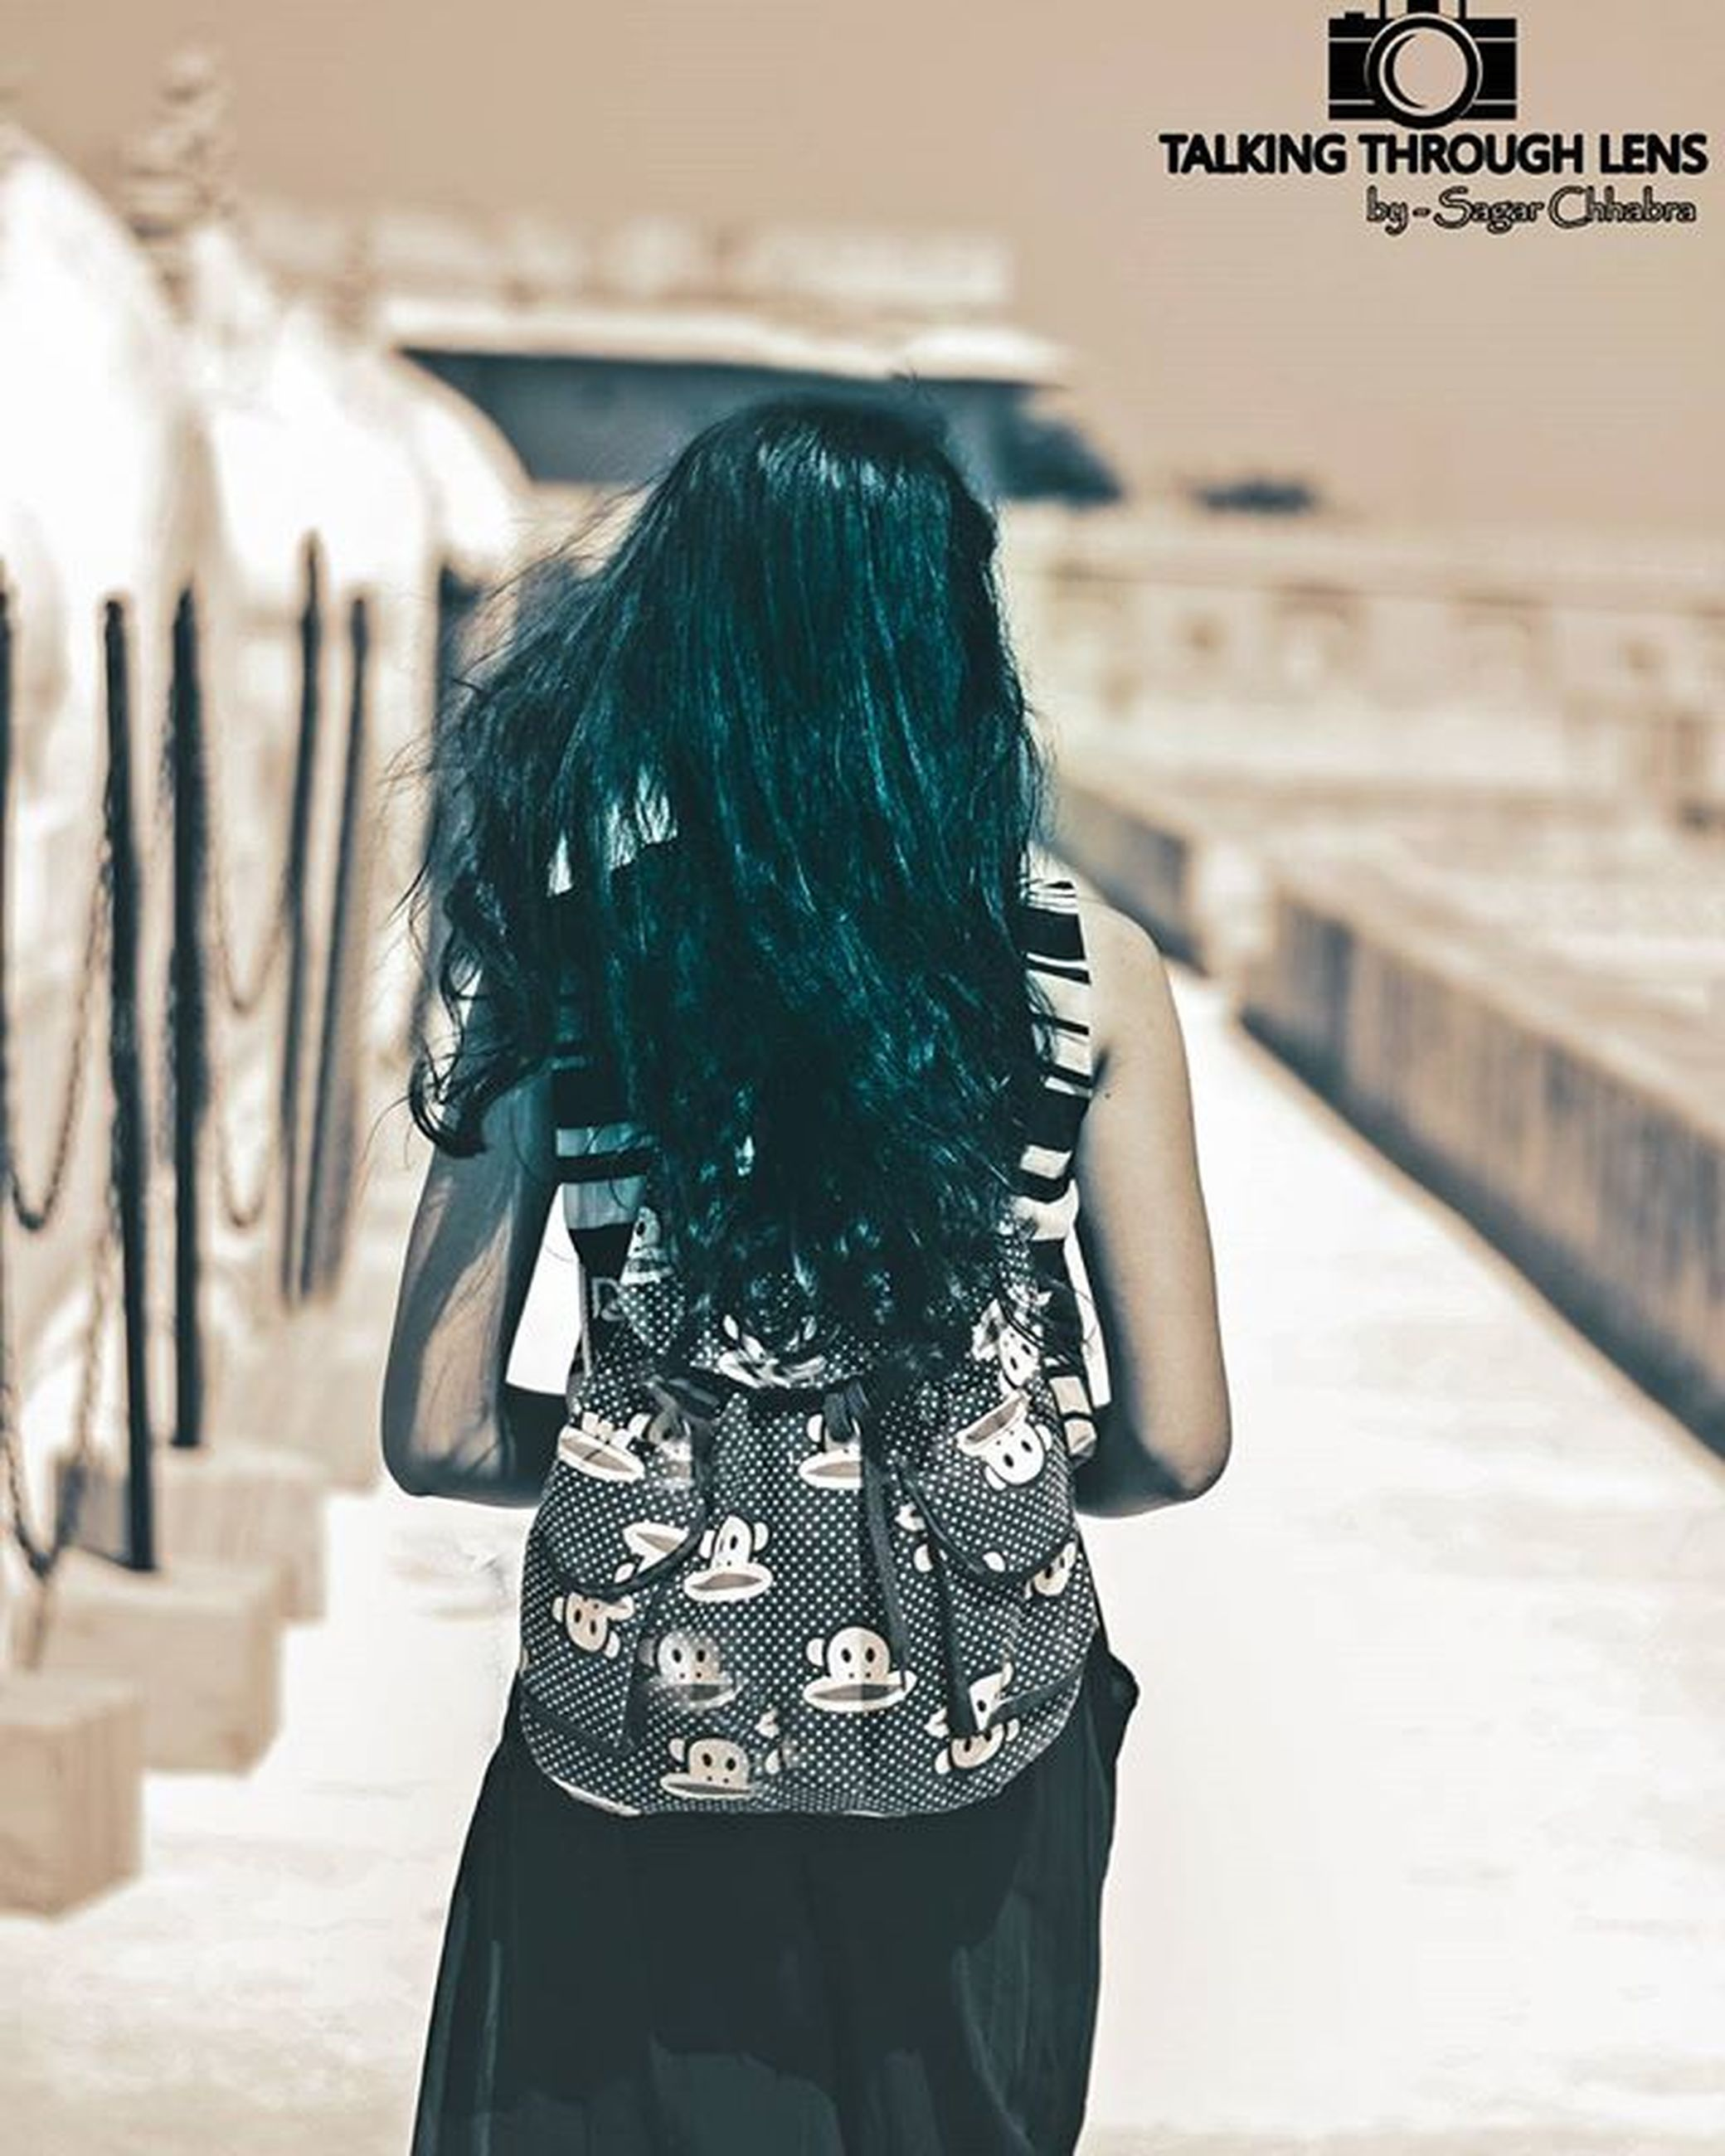 focus on foreground, lifestyles, leisure activity, rear view, person, casual clothing, standing, waist up, holding, long hair, close-up, side view, day, three quarter length, outdoors, part of, men